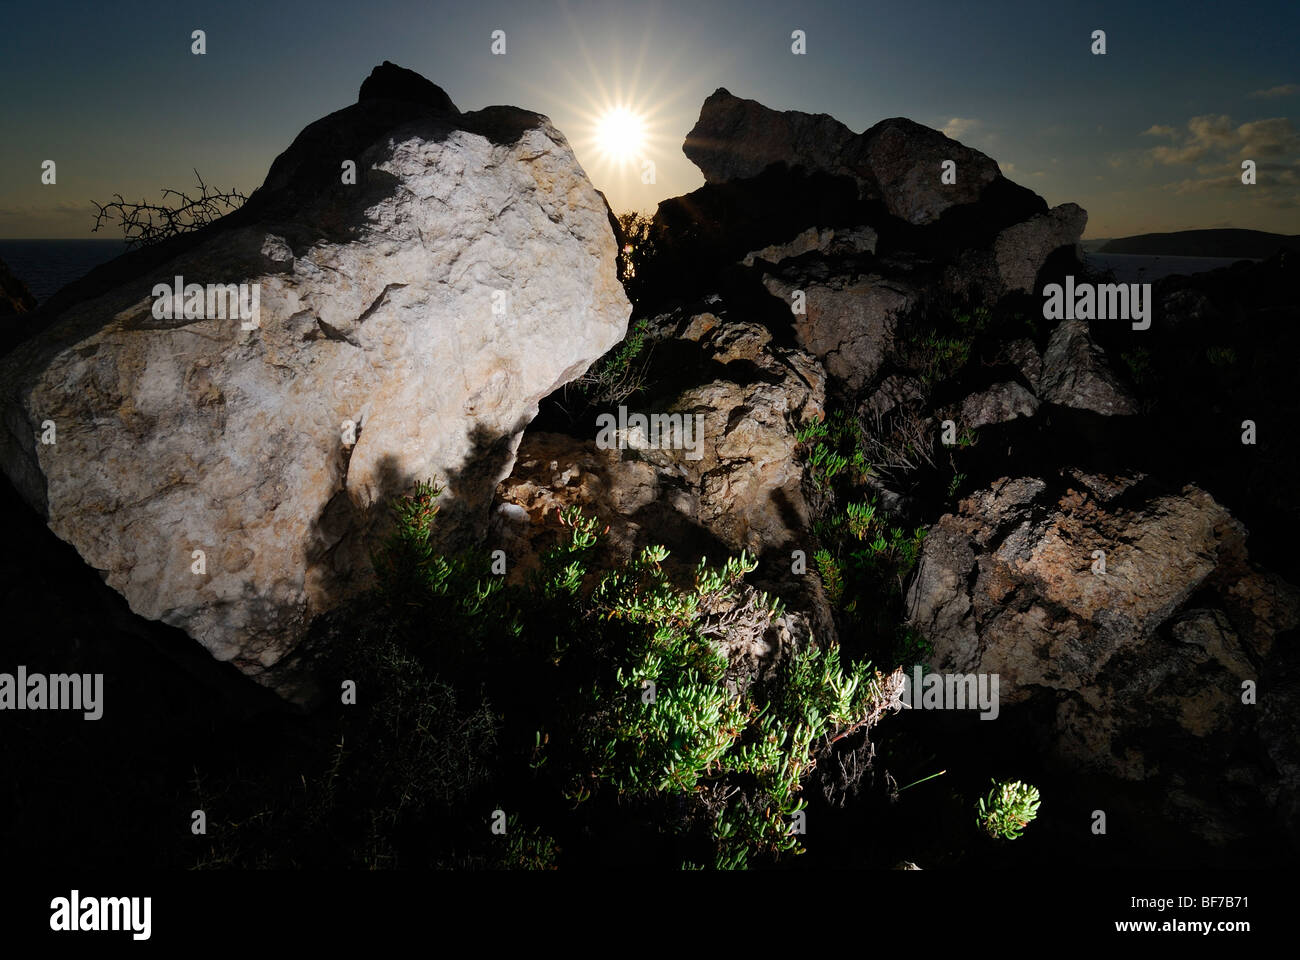 still life of rocks and grass with chiaroscuro effect - Stock Image